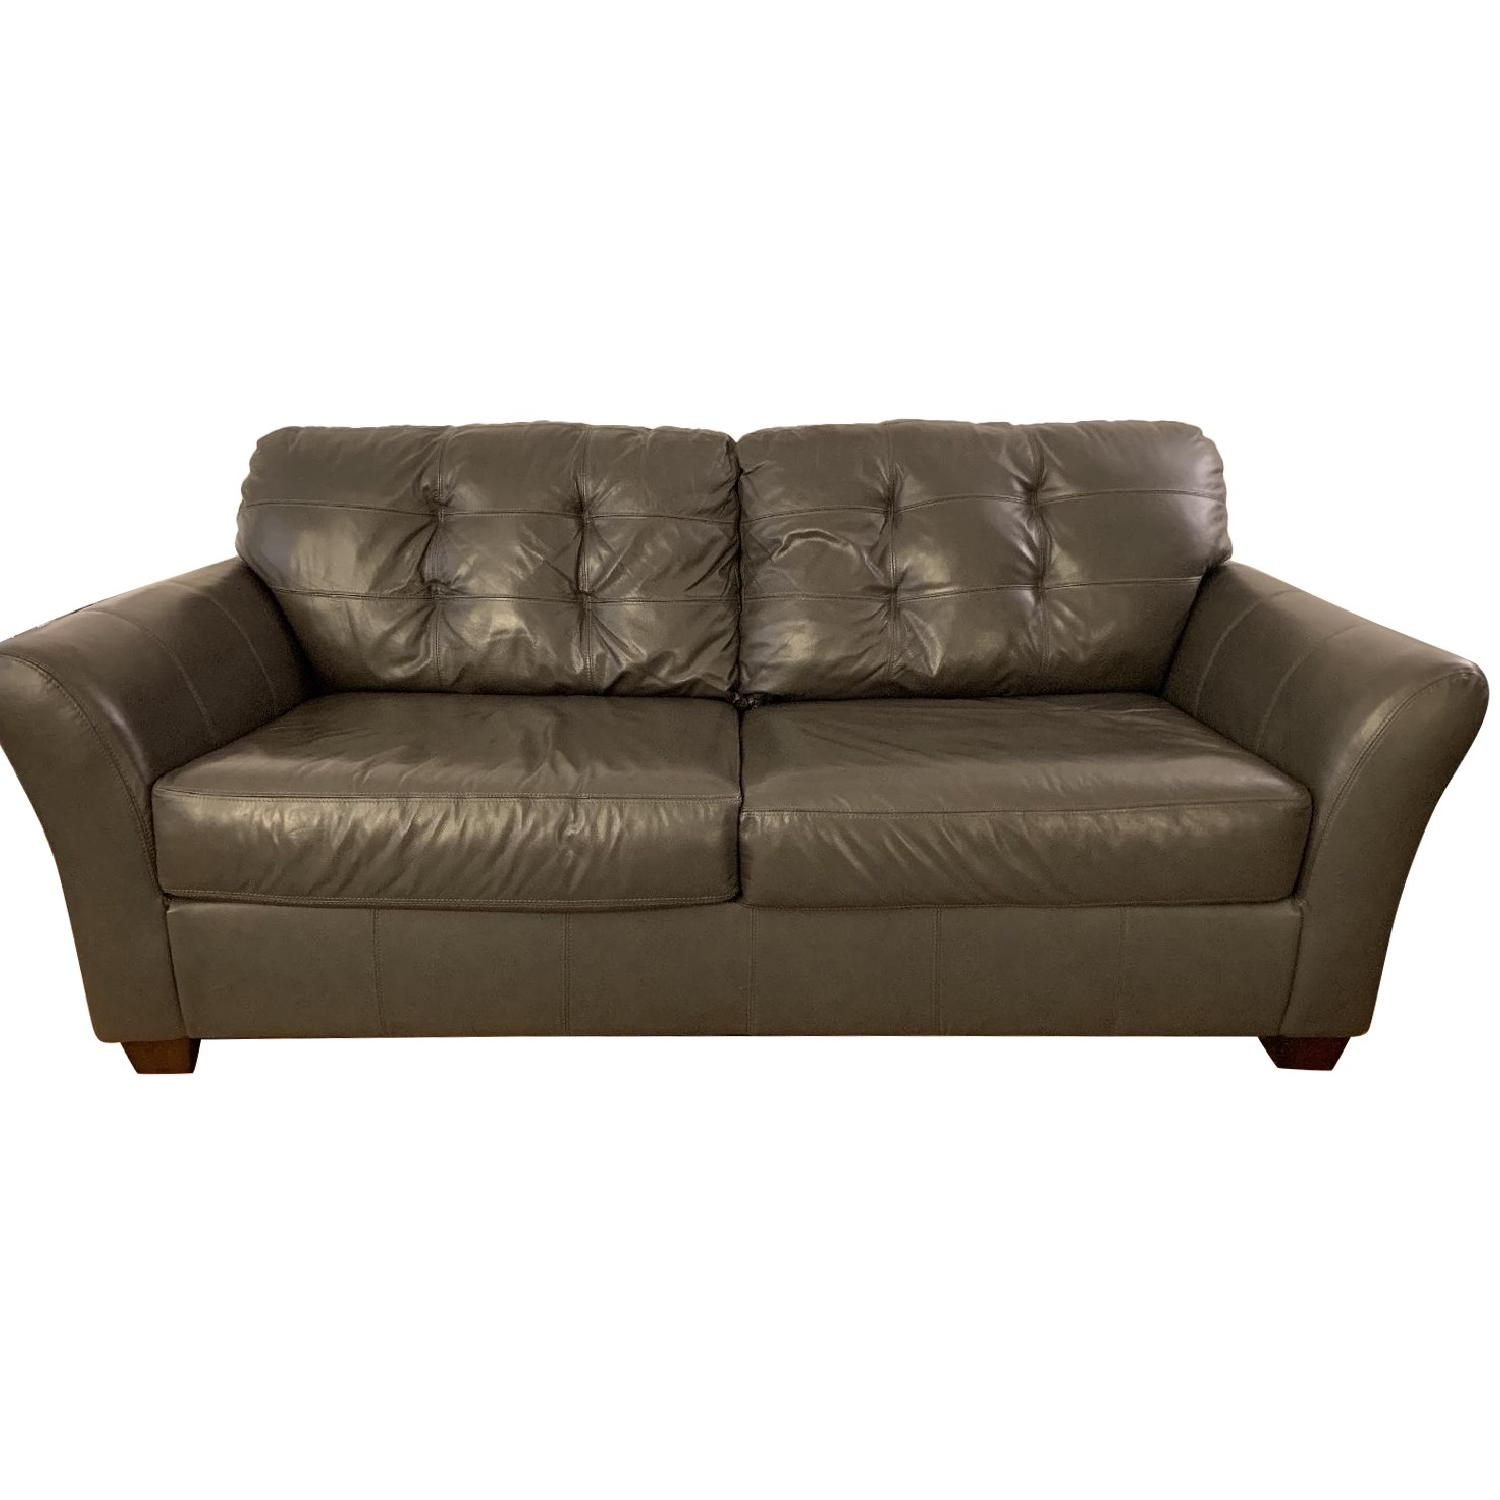 Jennifer Convertibles Gray Bonded Leather Sofa + Chair